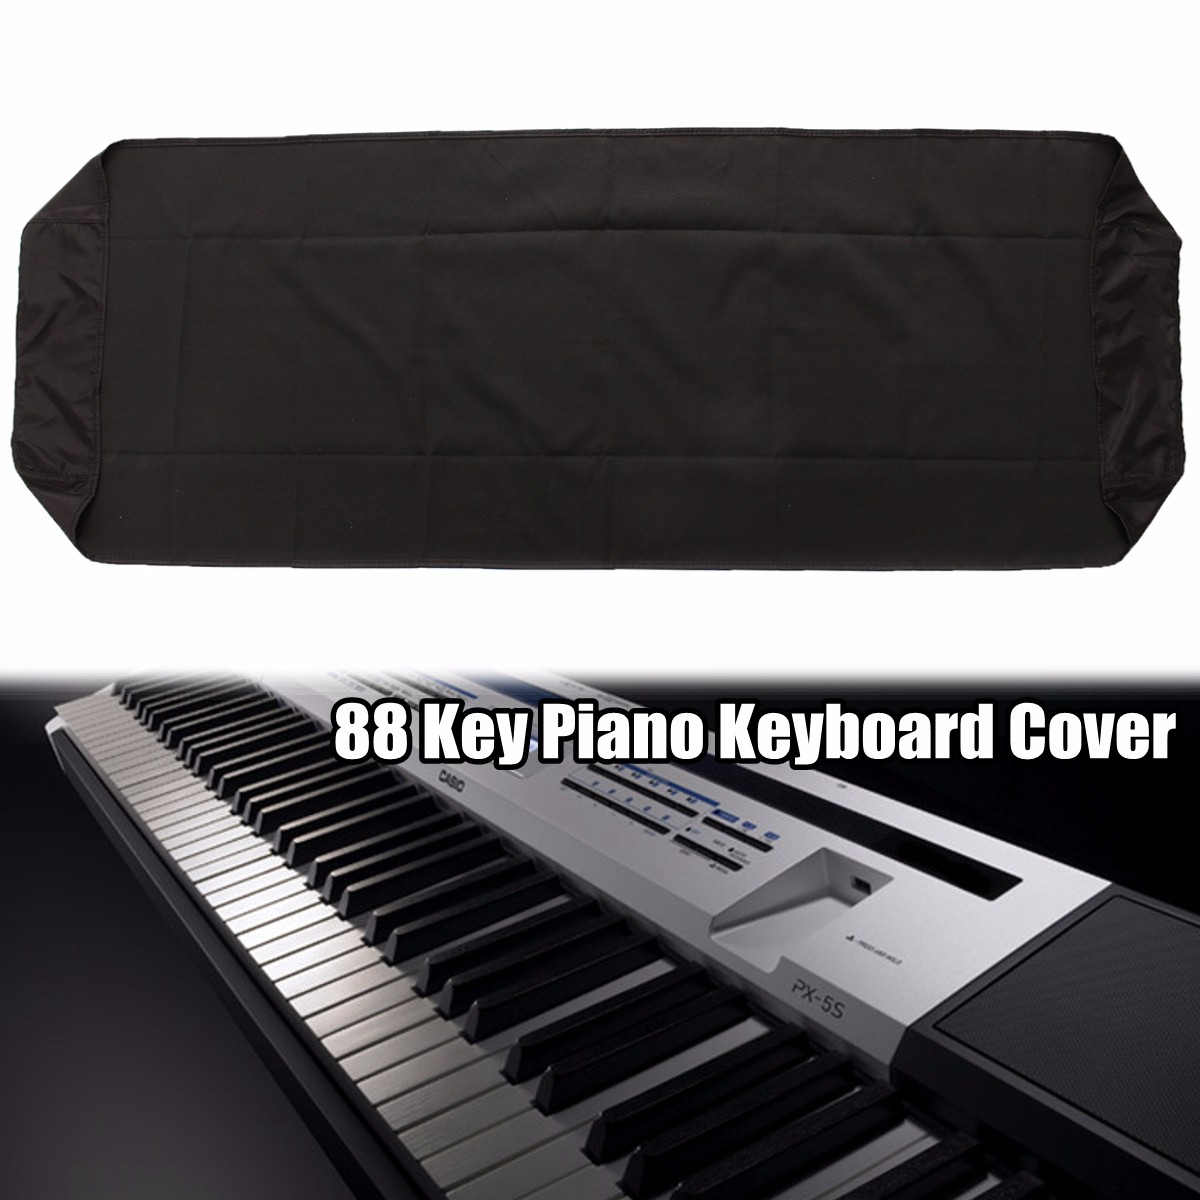 88Key Electronic Piano Keyboard Cover Protector Dustproof Dirt-proof 134x29x14cm by